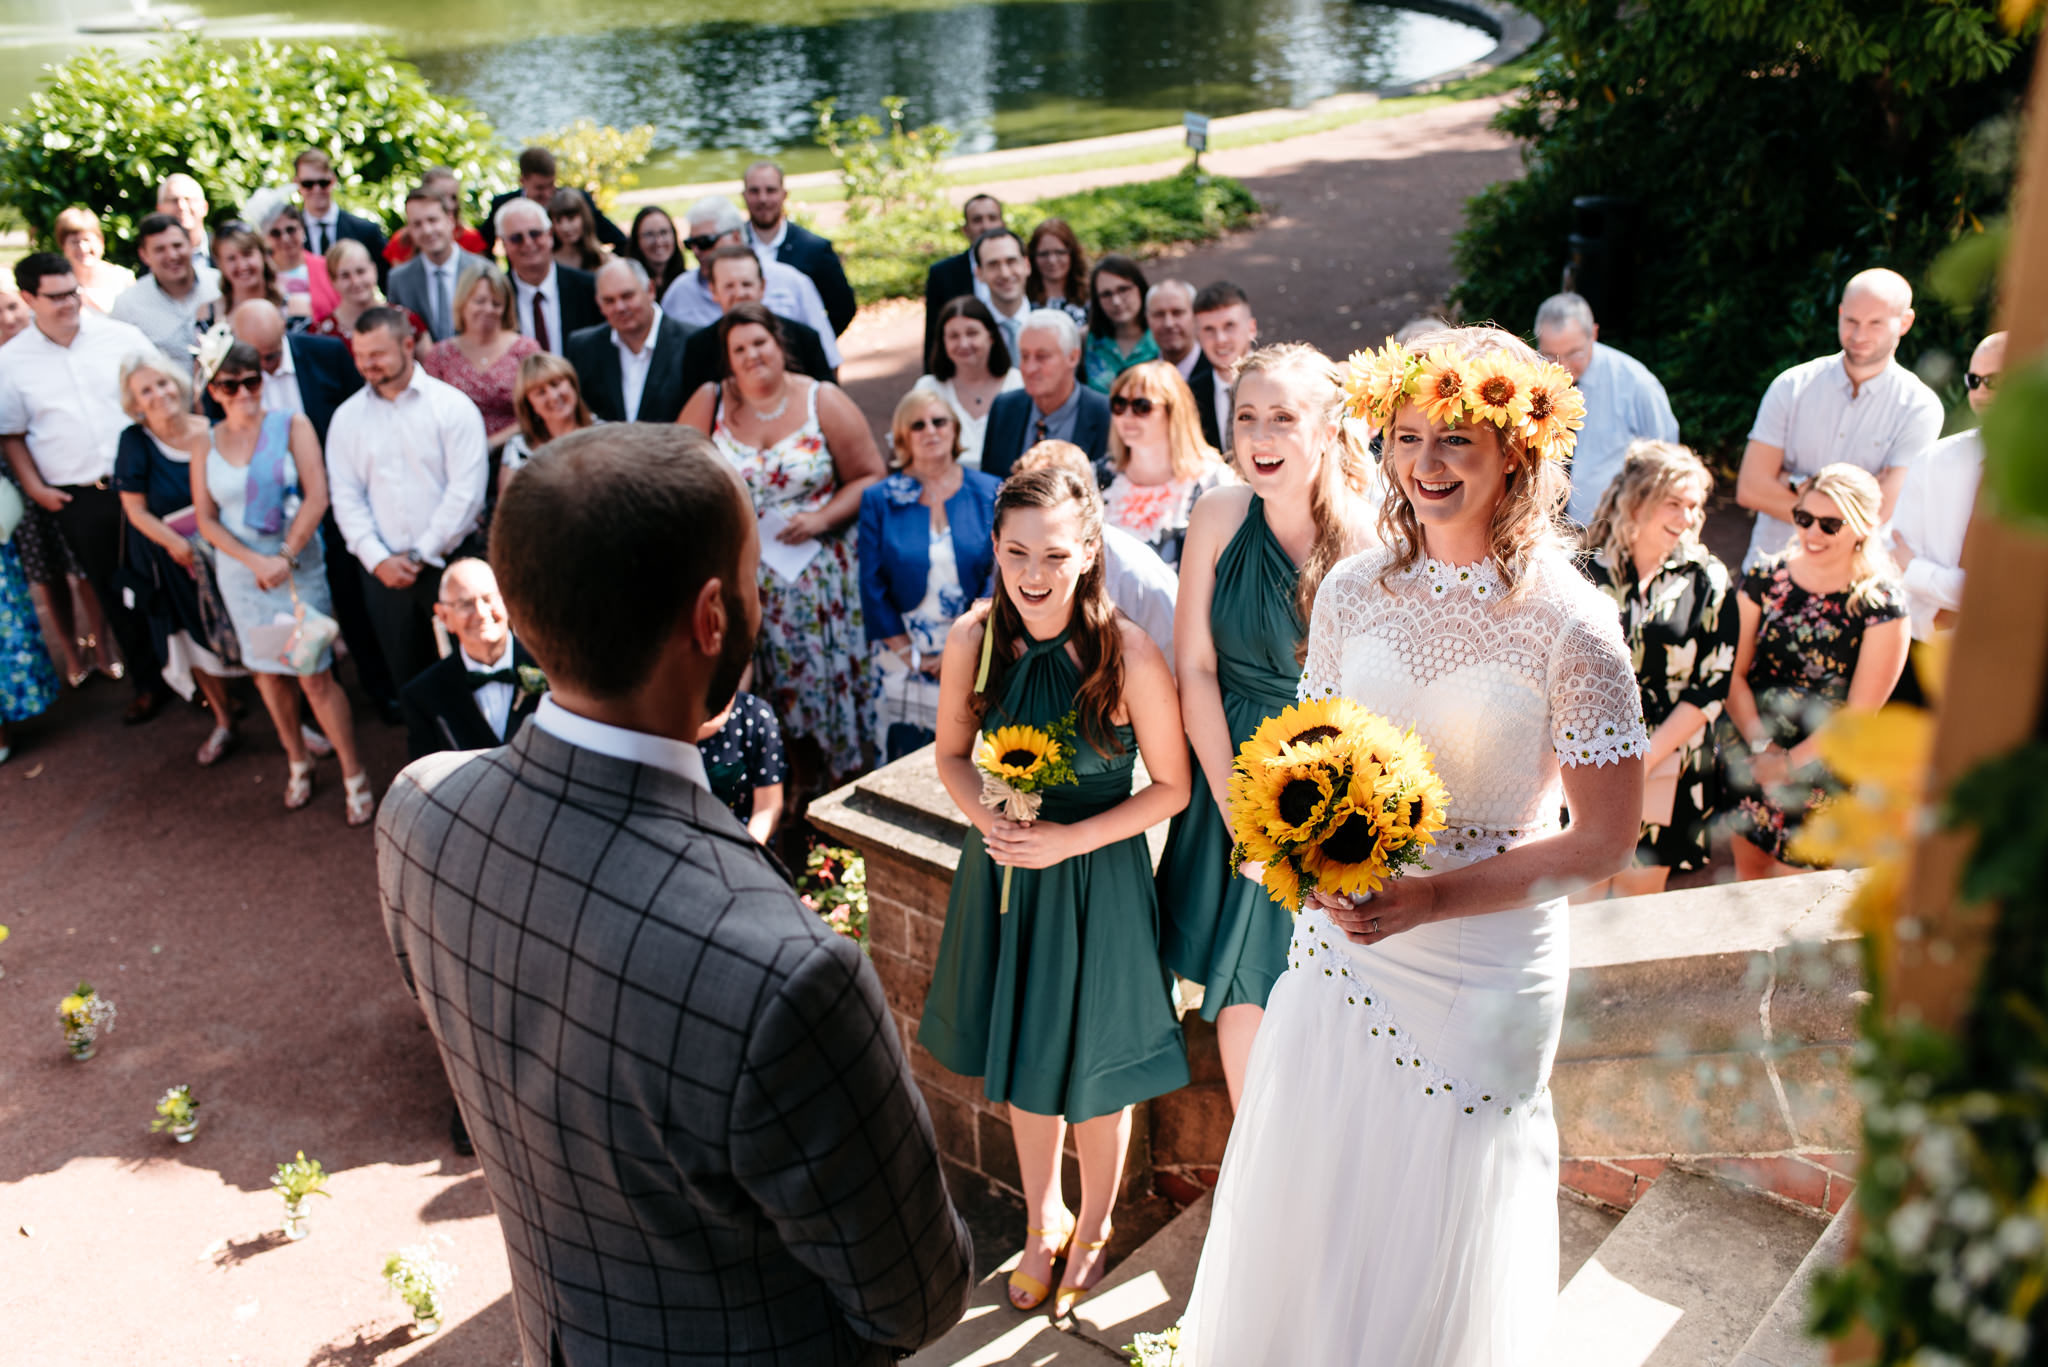 getting married on the steps of papplewick pumping station